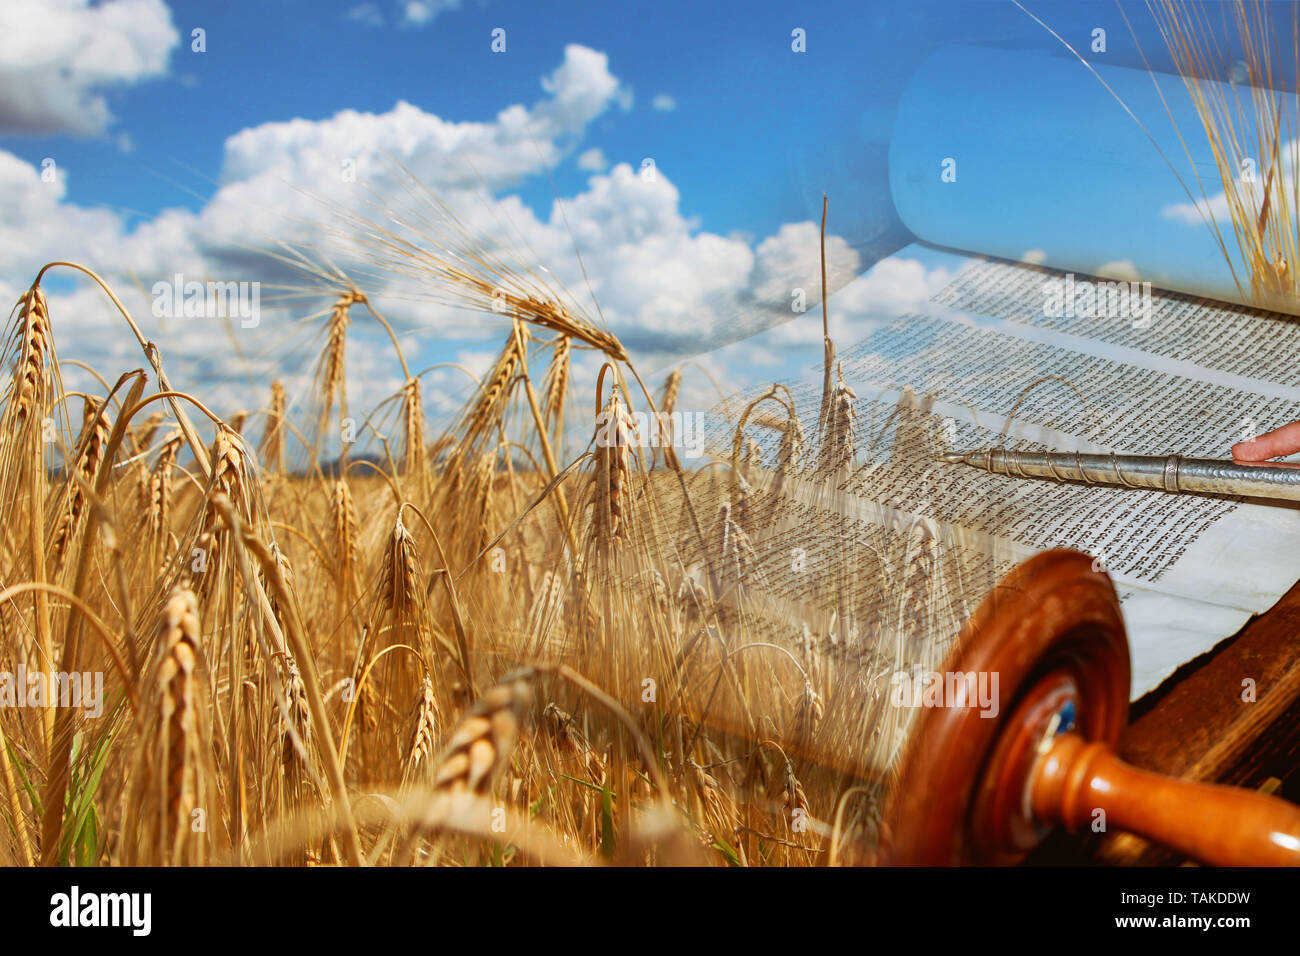 Symbols of jewish holiday Shavuot Torah and wheat field meadow. - Stock Image